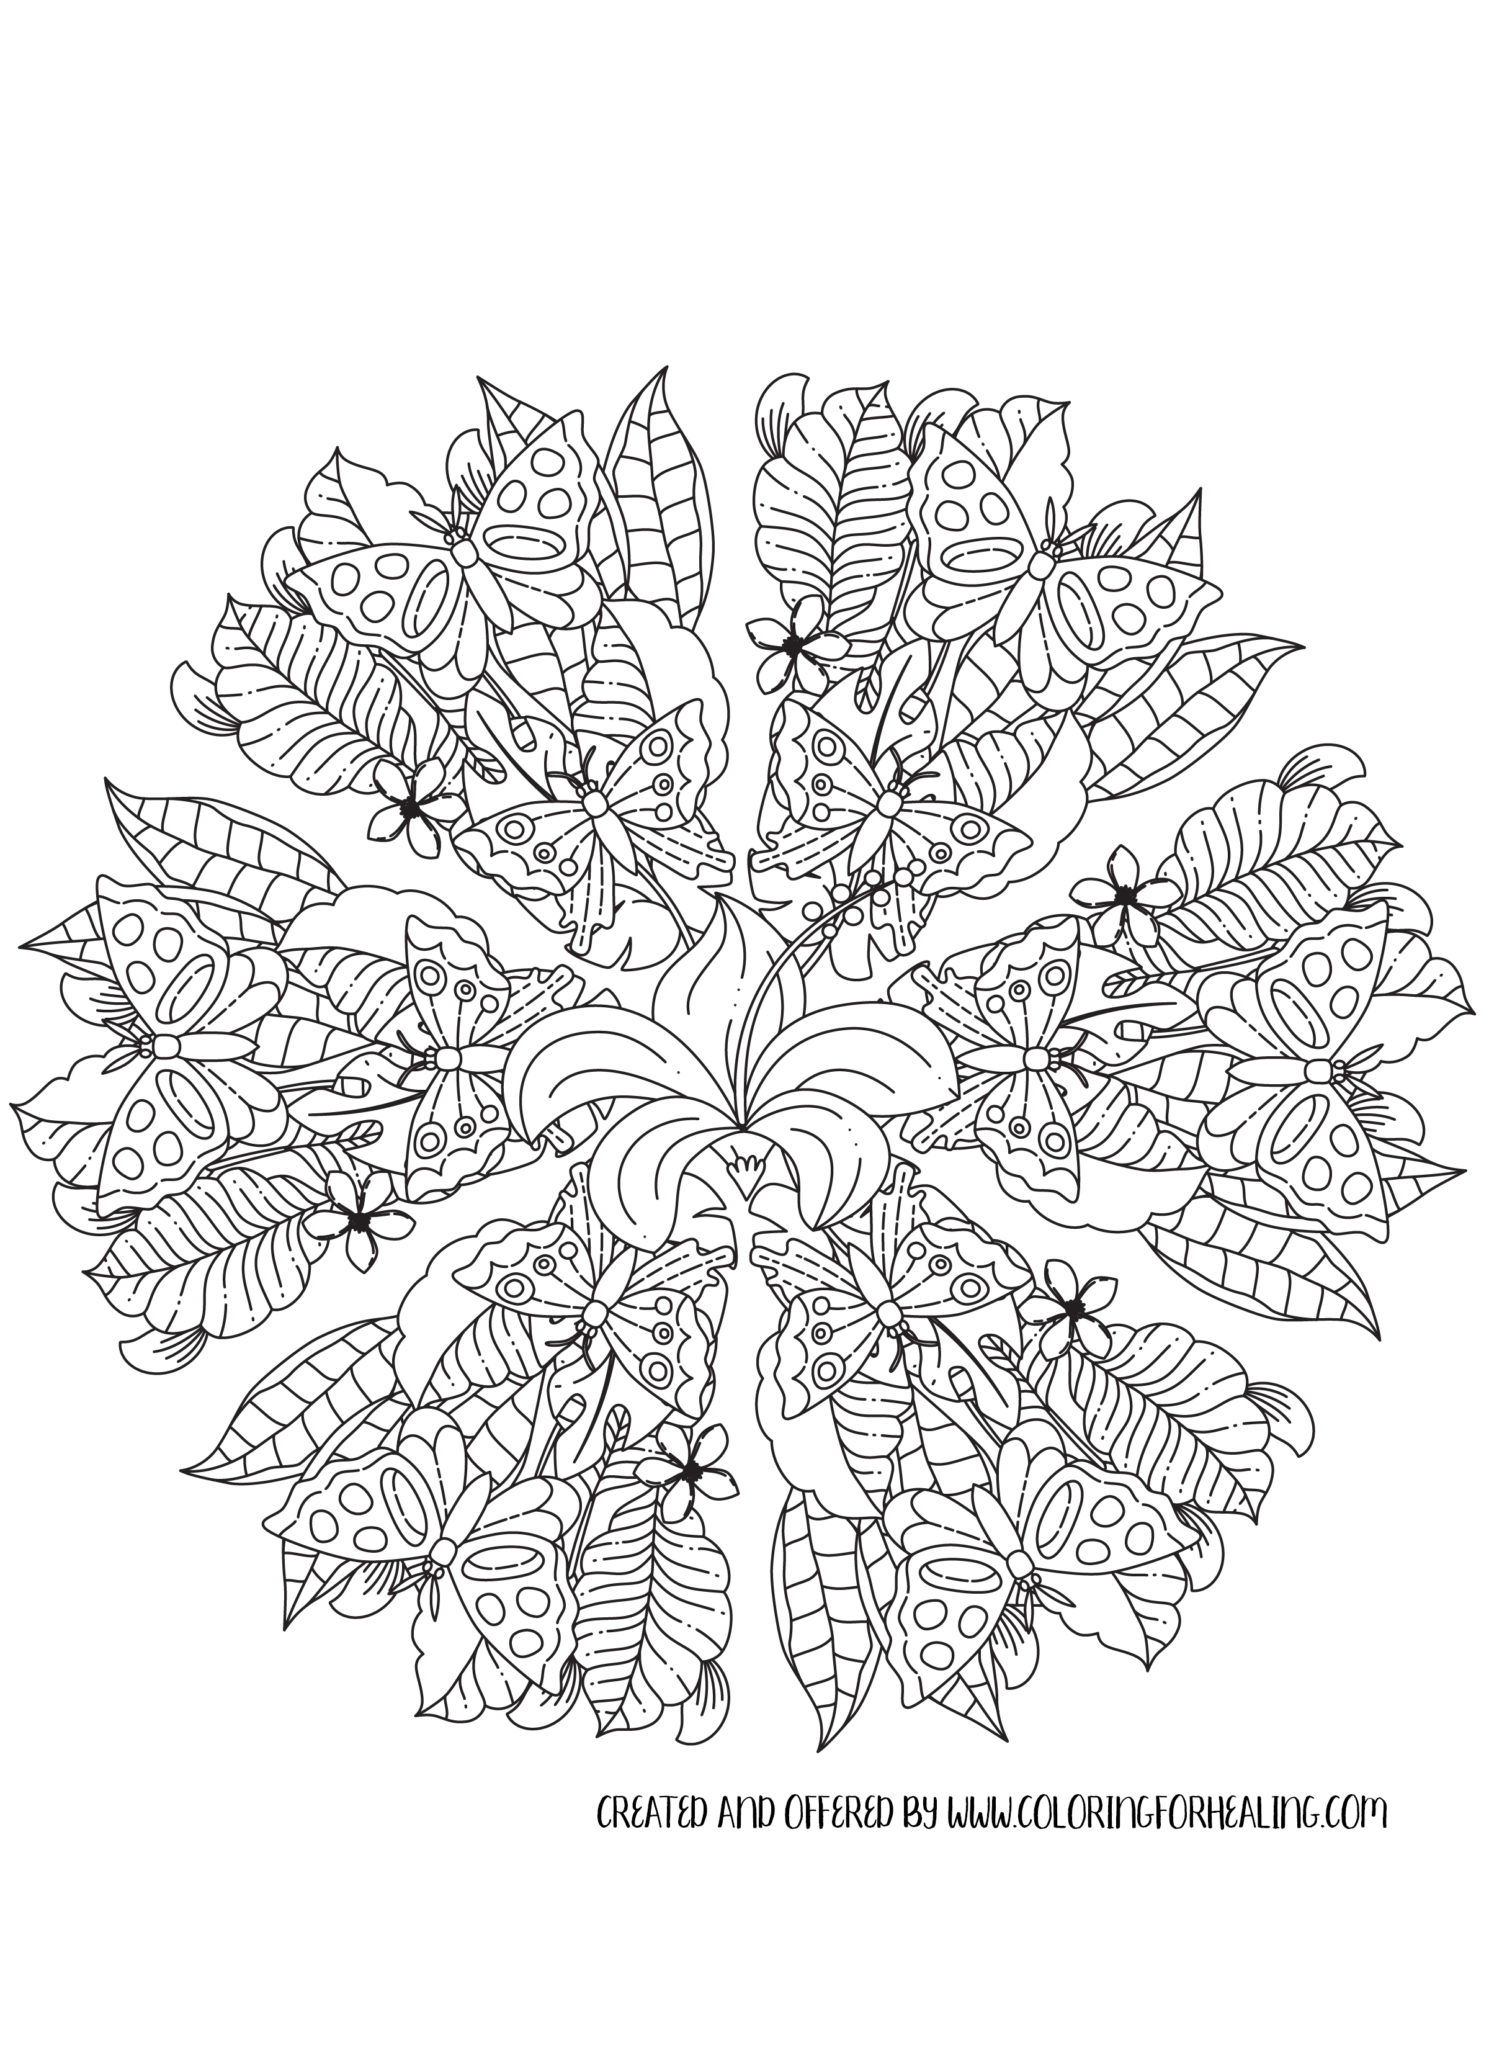 Butterfly Bliss Mandala Free Coloring Page